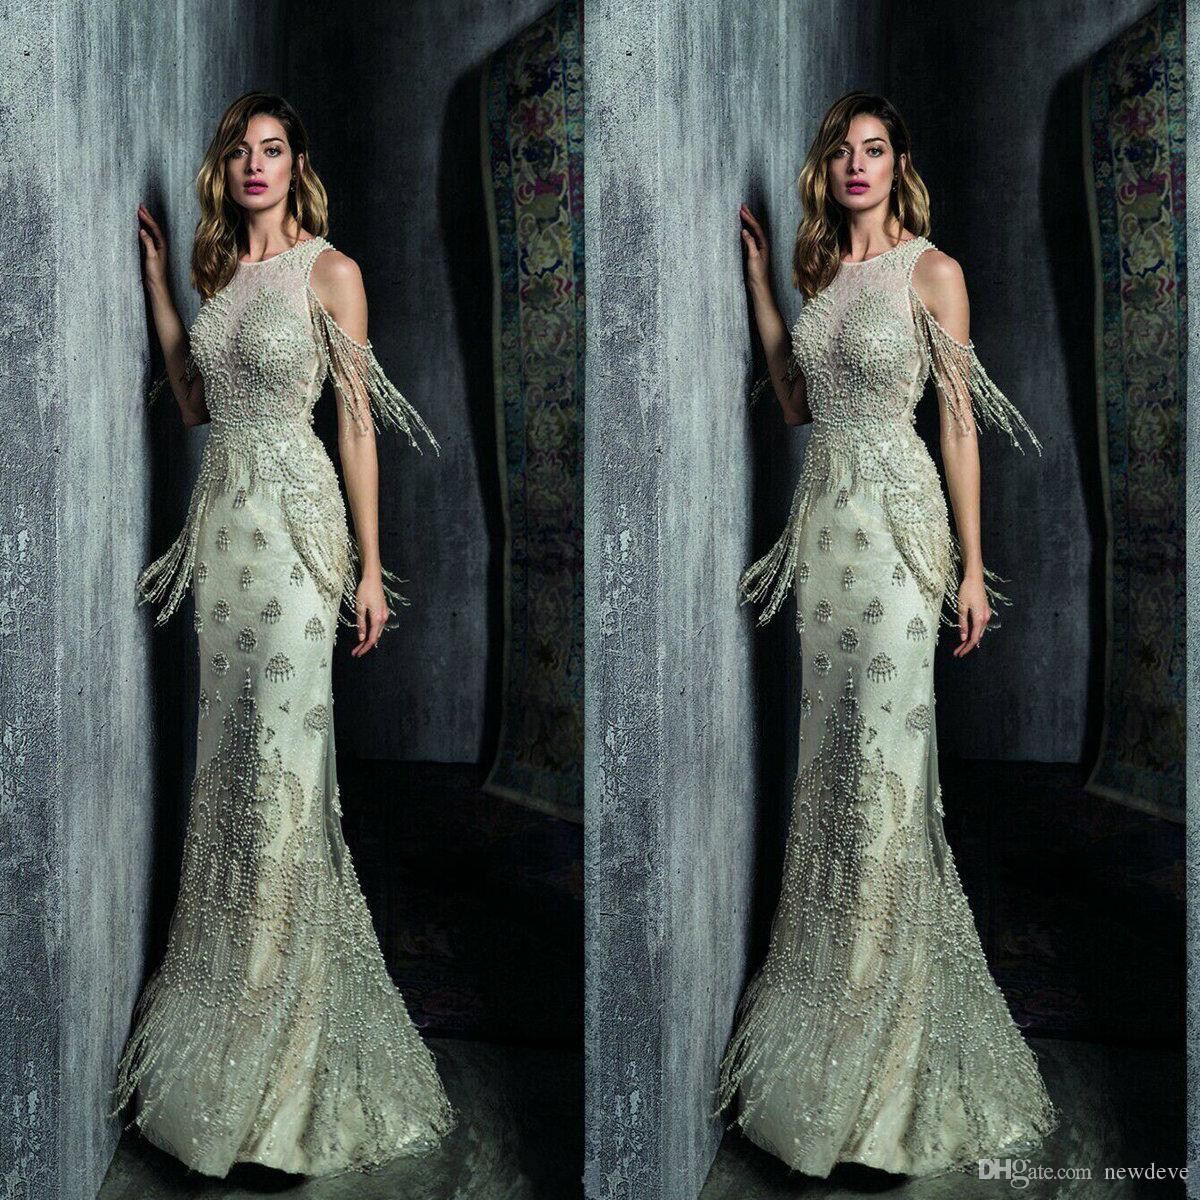 Ziad Nakad Mermaid Evening Dresses 2019 Yousef Aljasm Jewel Pearls Prom Gowns Floor Length Lace Beading Special Occasion Dress Tassel